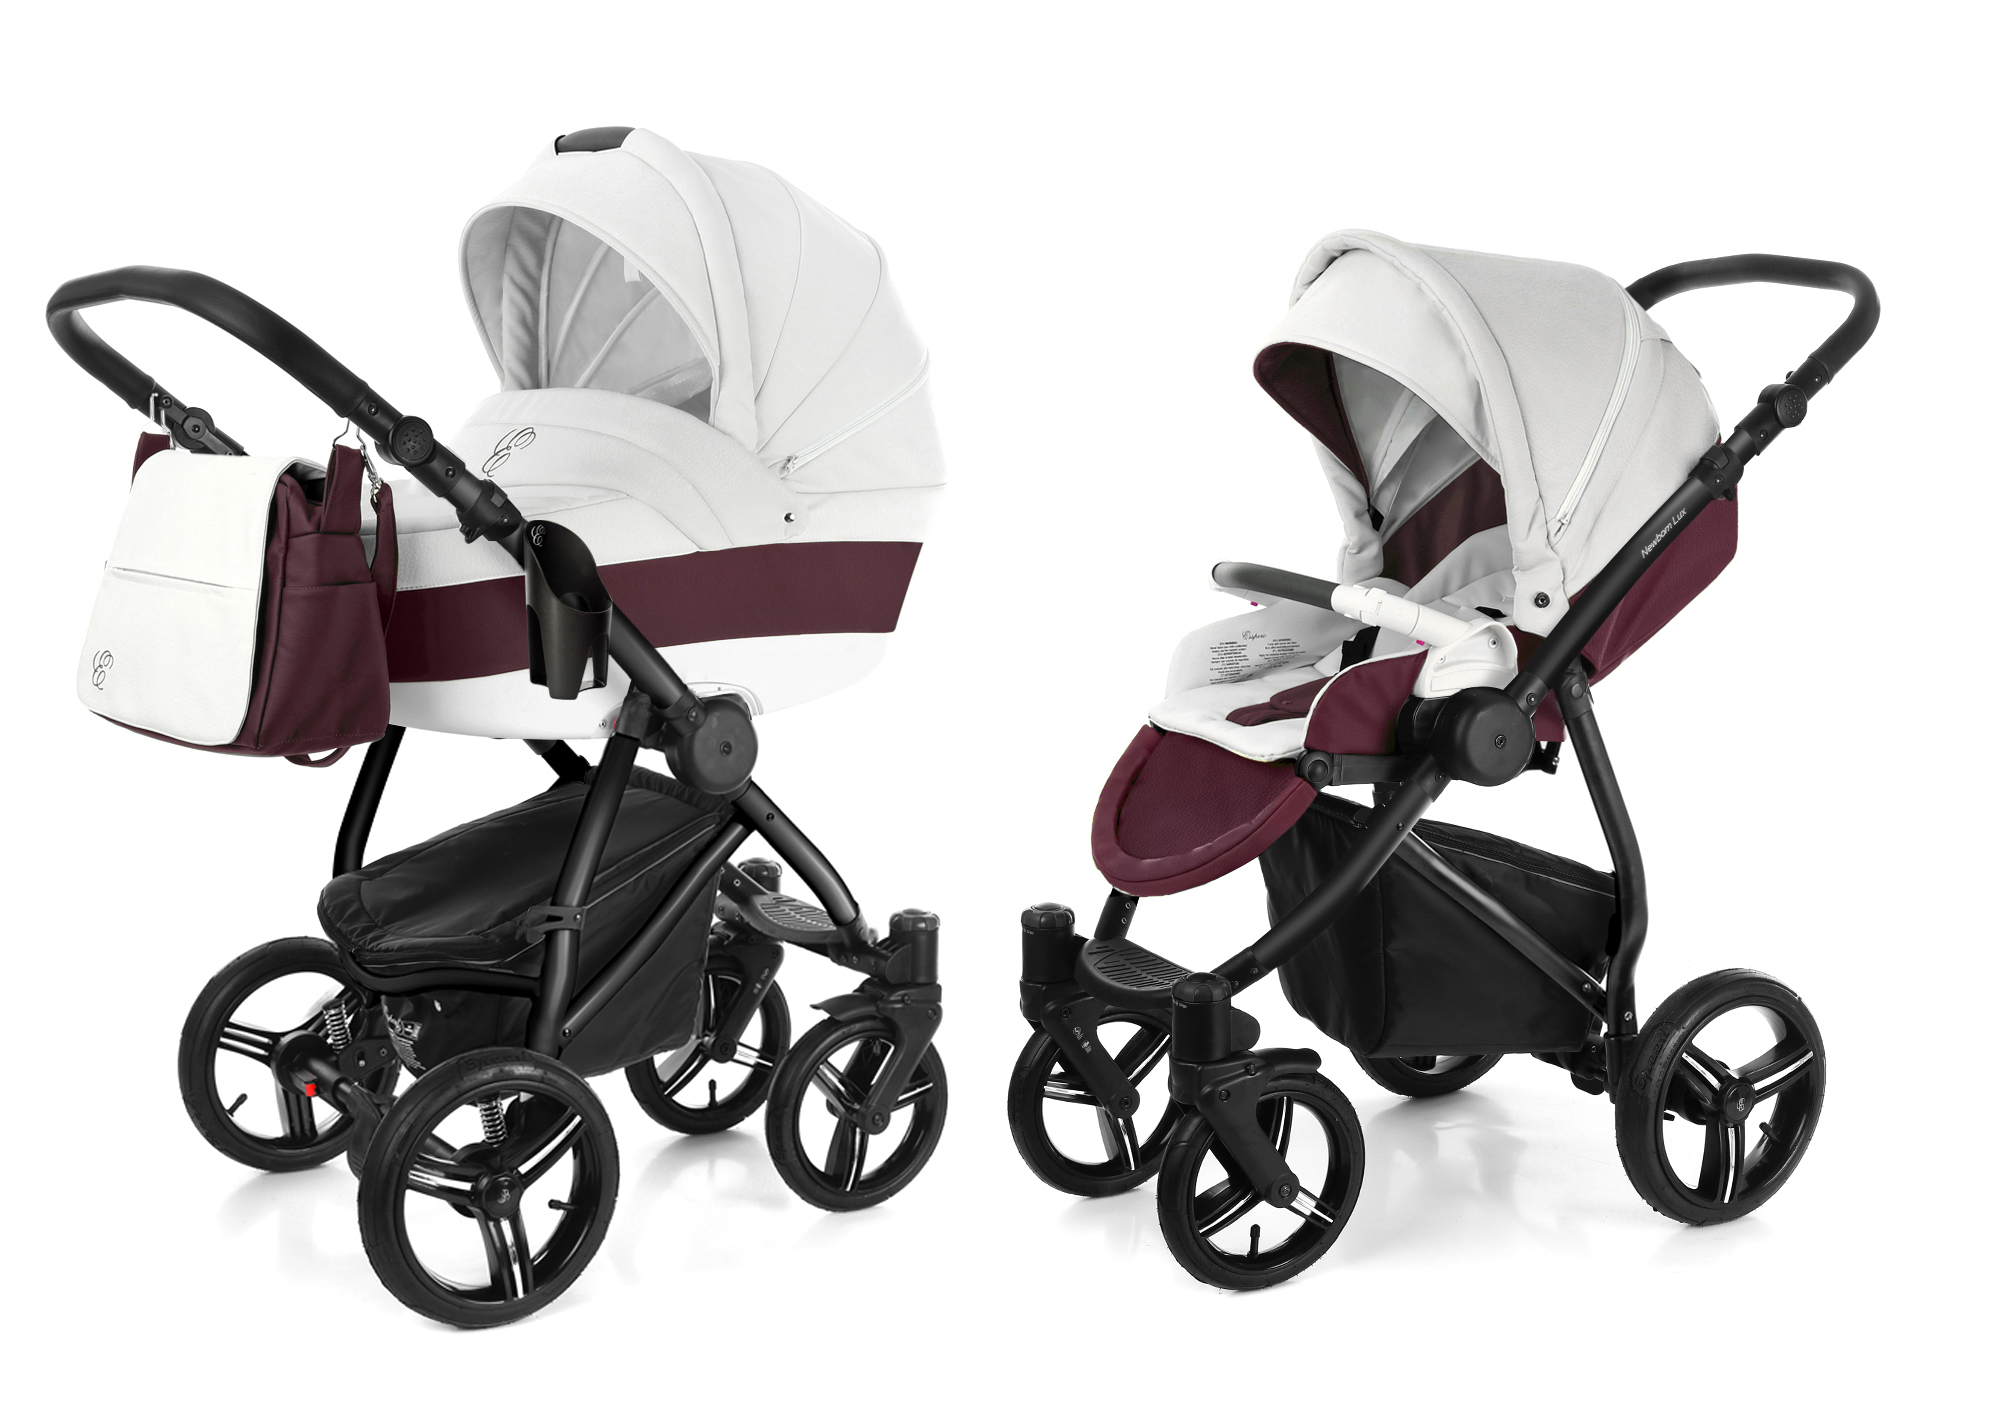 Коляска 2 в 1 Esspero Grand Newborn Lux (шасси Black) Maroon leatherette